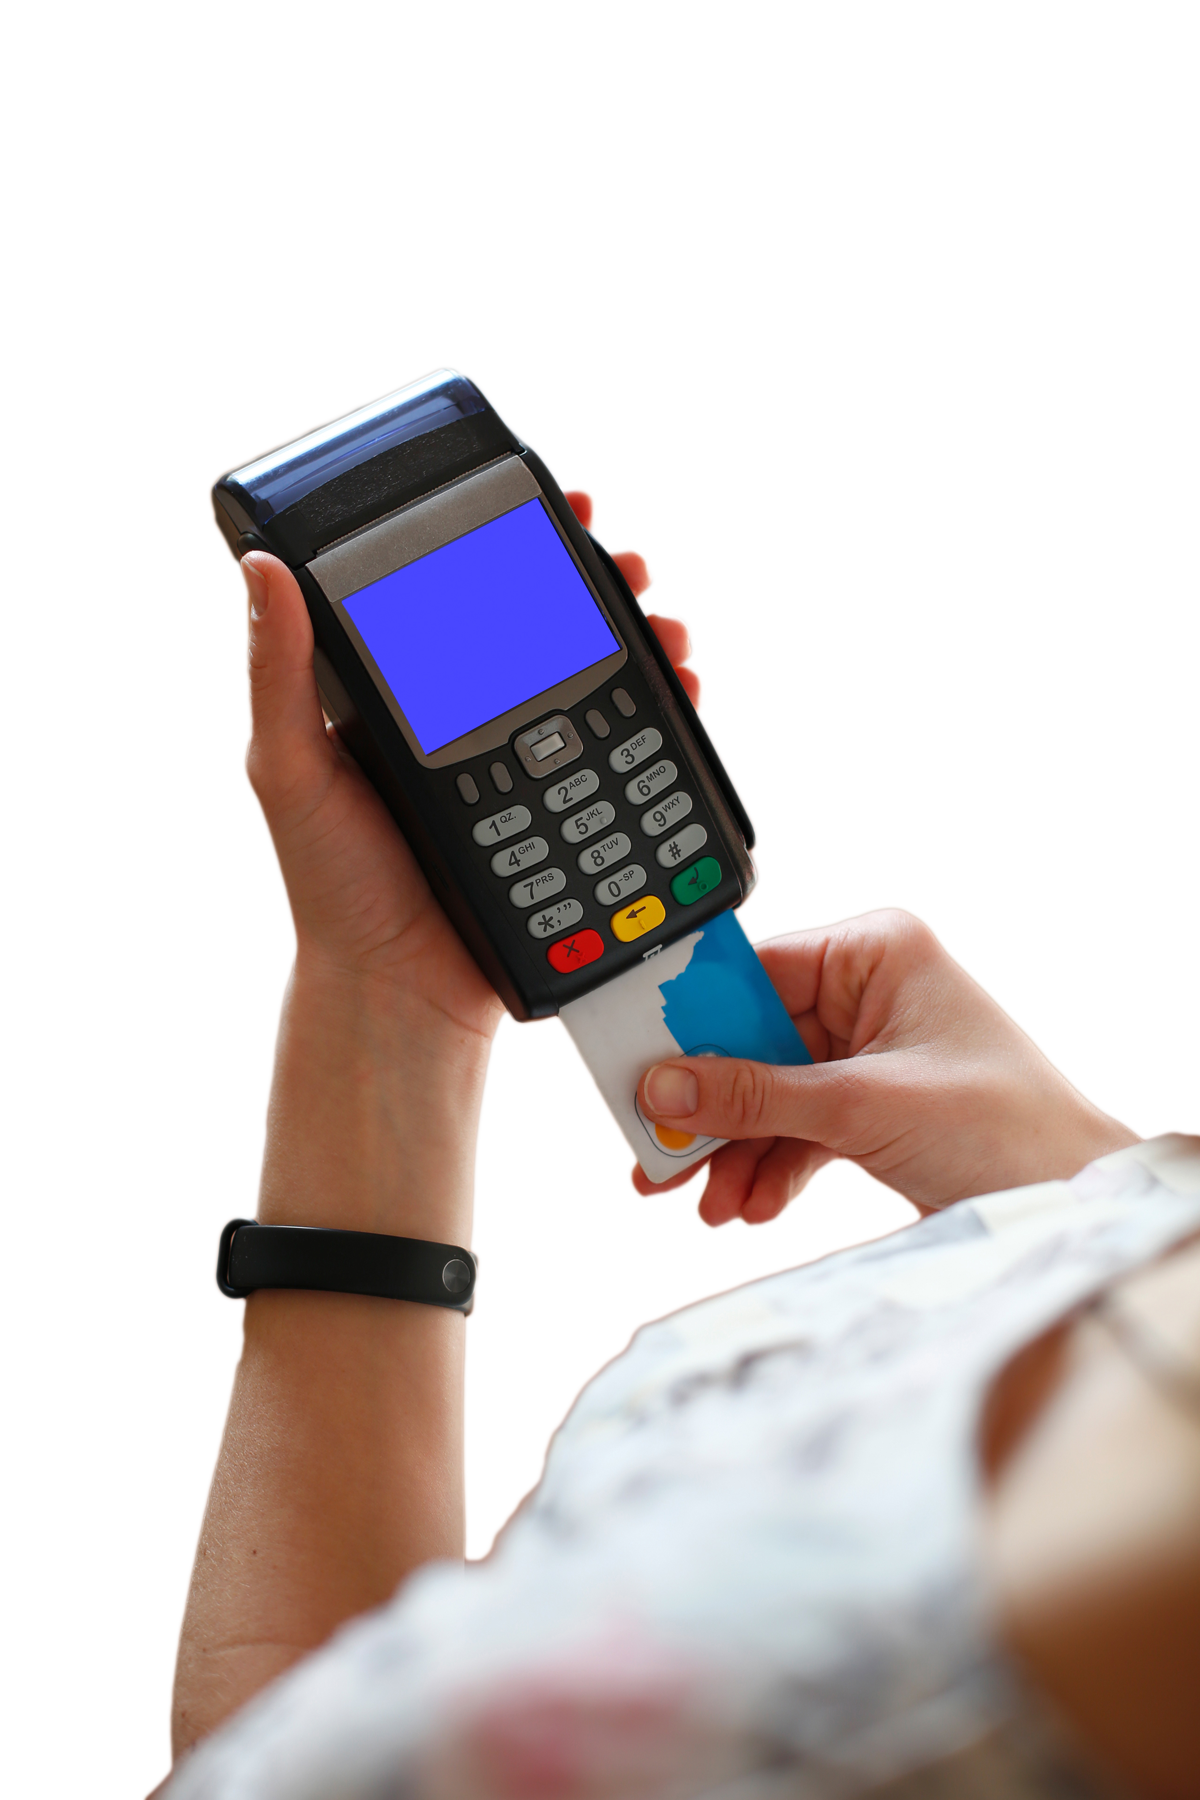 Delaware-Based Merchant inserting chip card into POS terminal